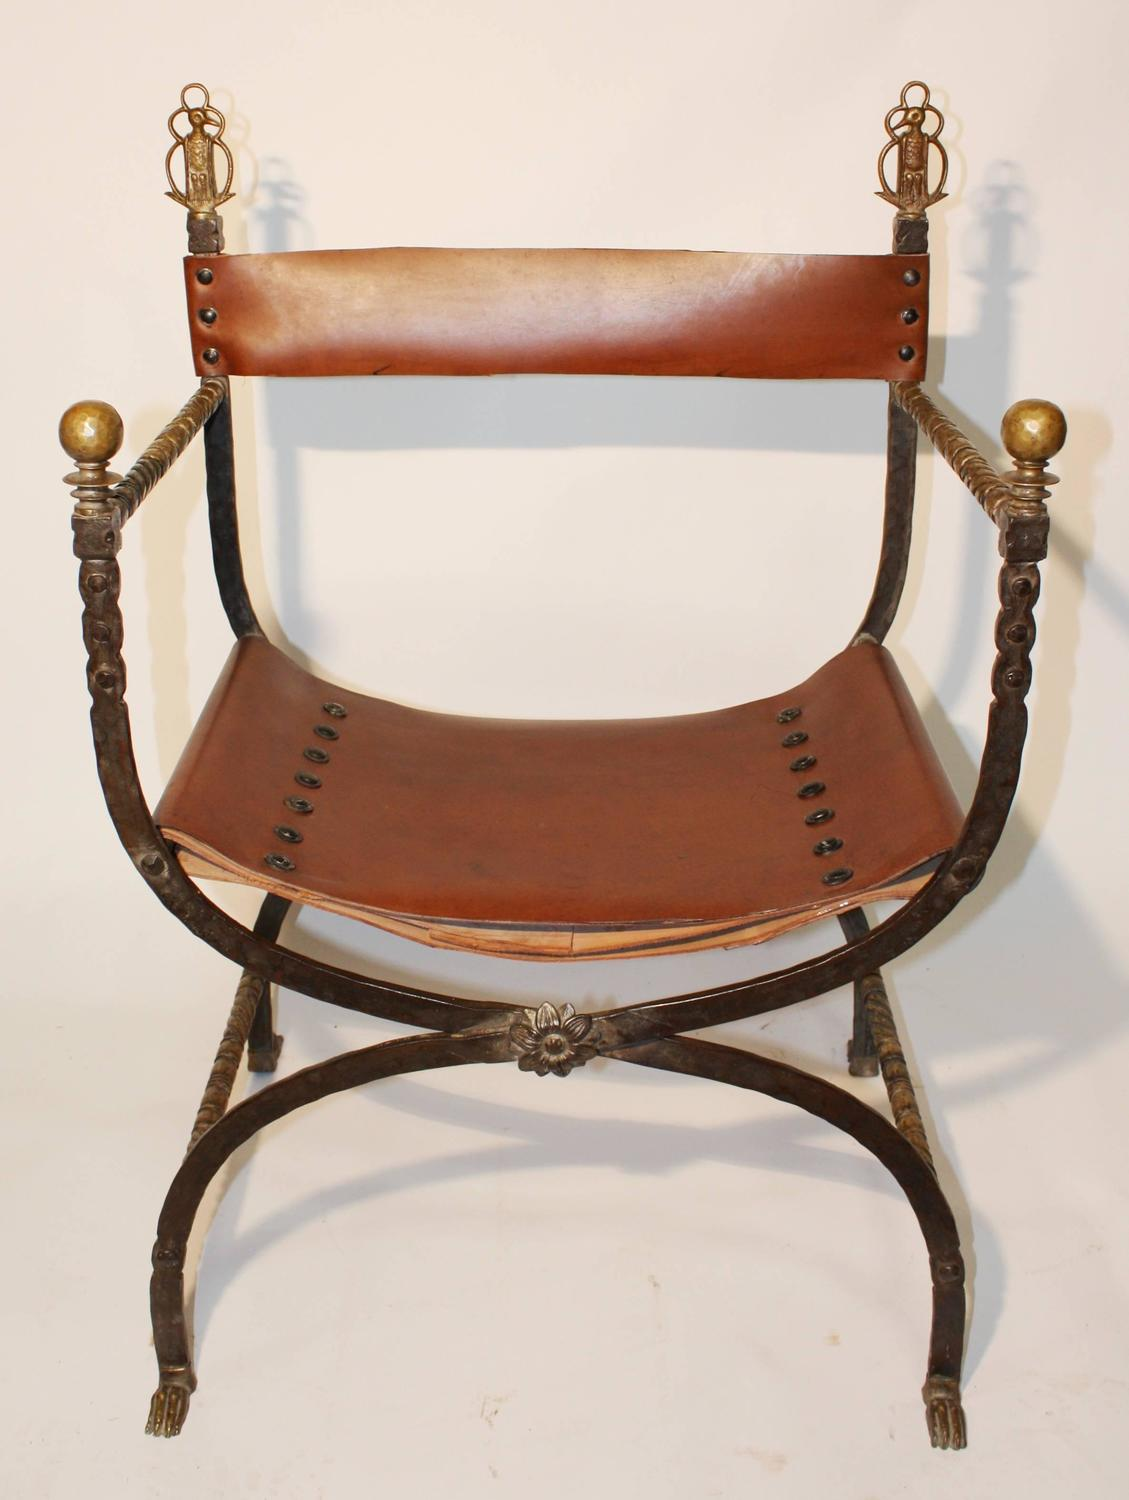 Z Chair For Sale Folding Campaign Chair By Oscar Bach 1930s For Sale At